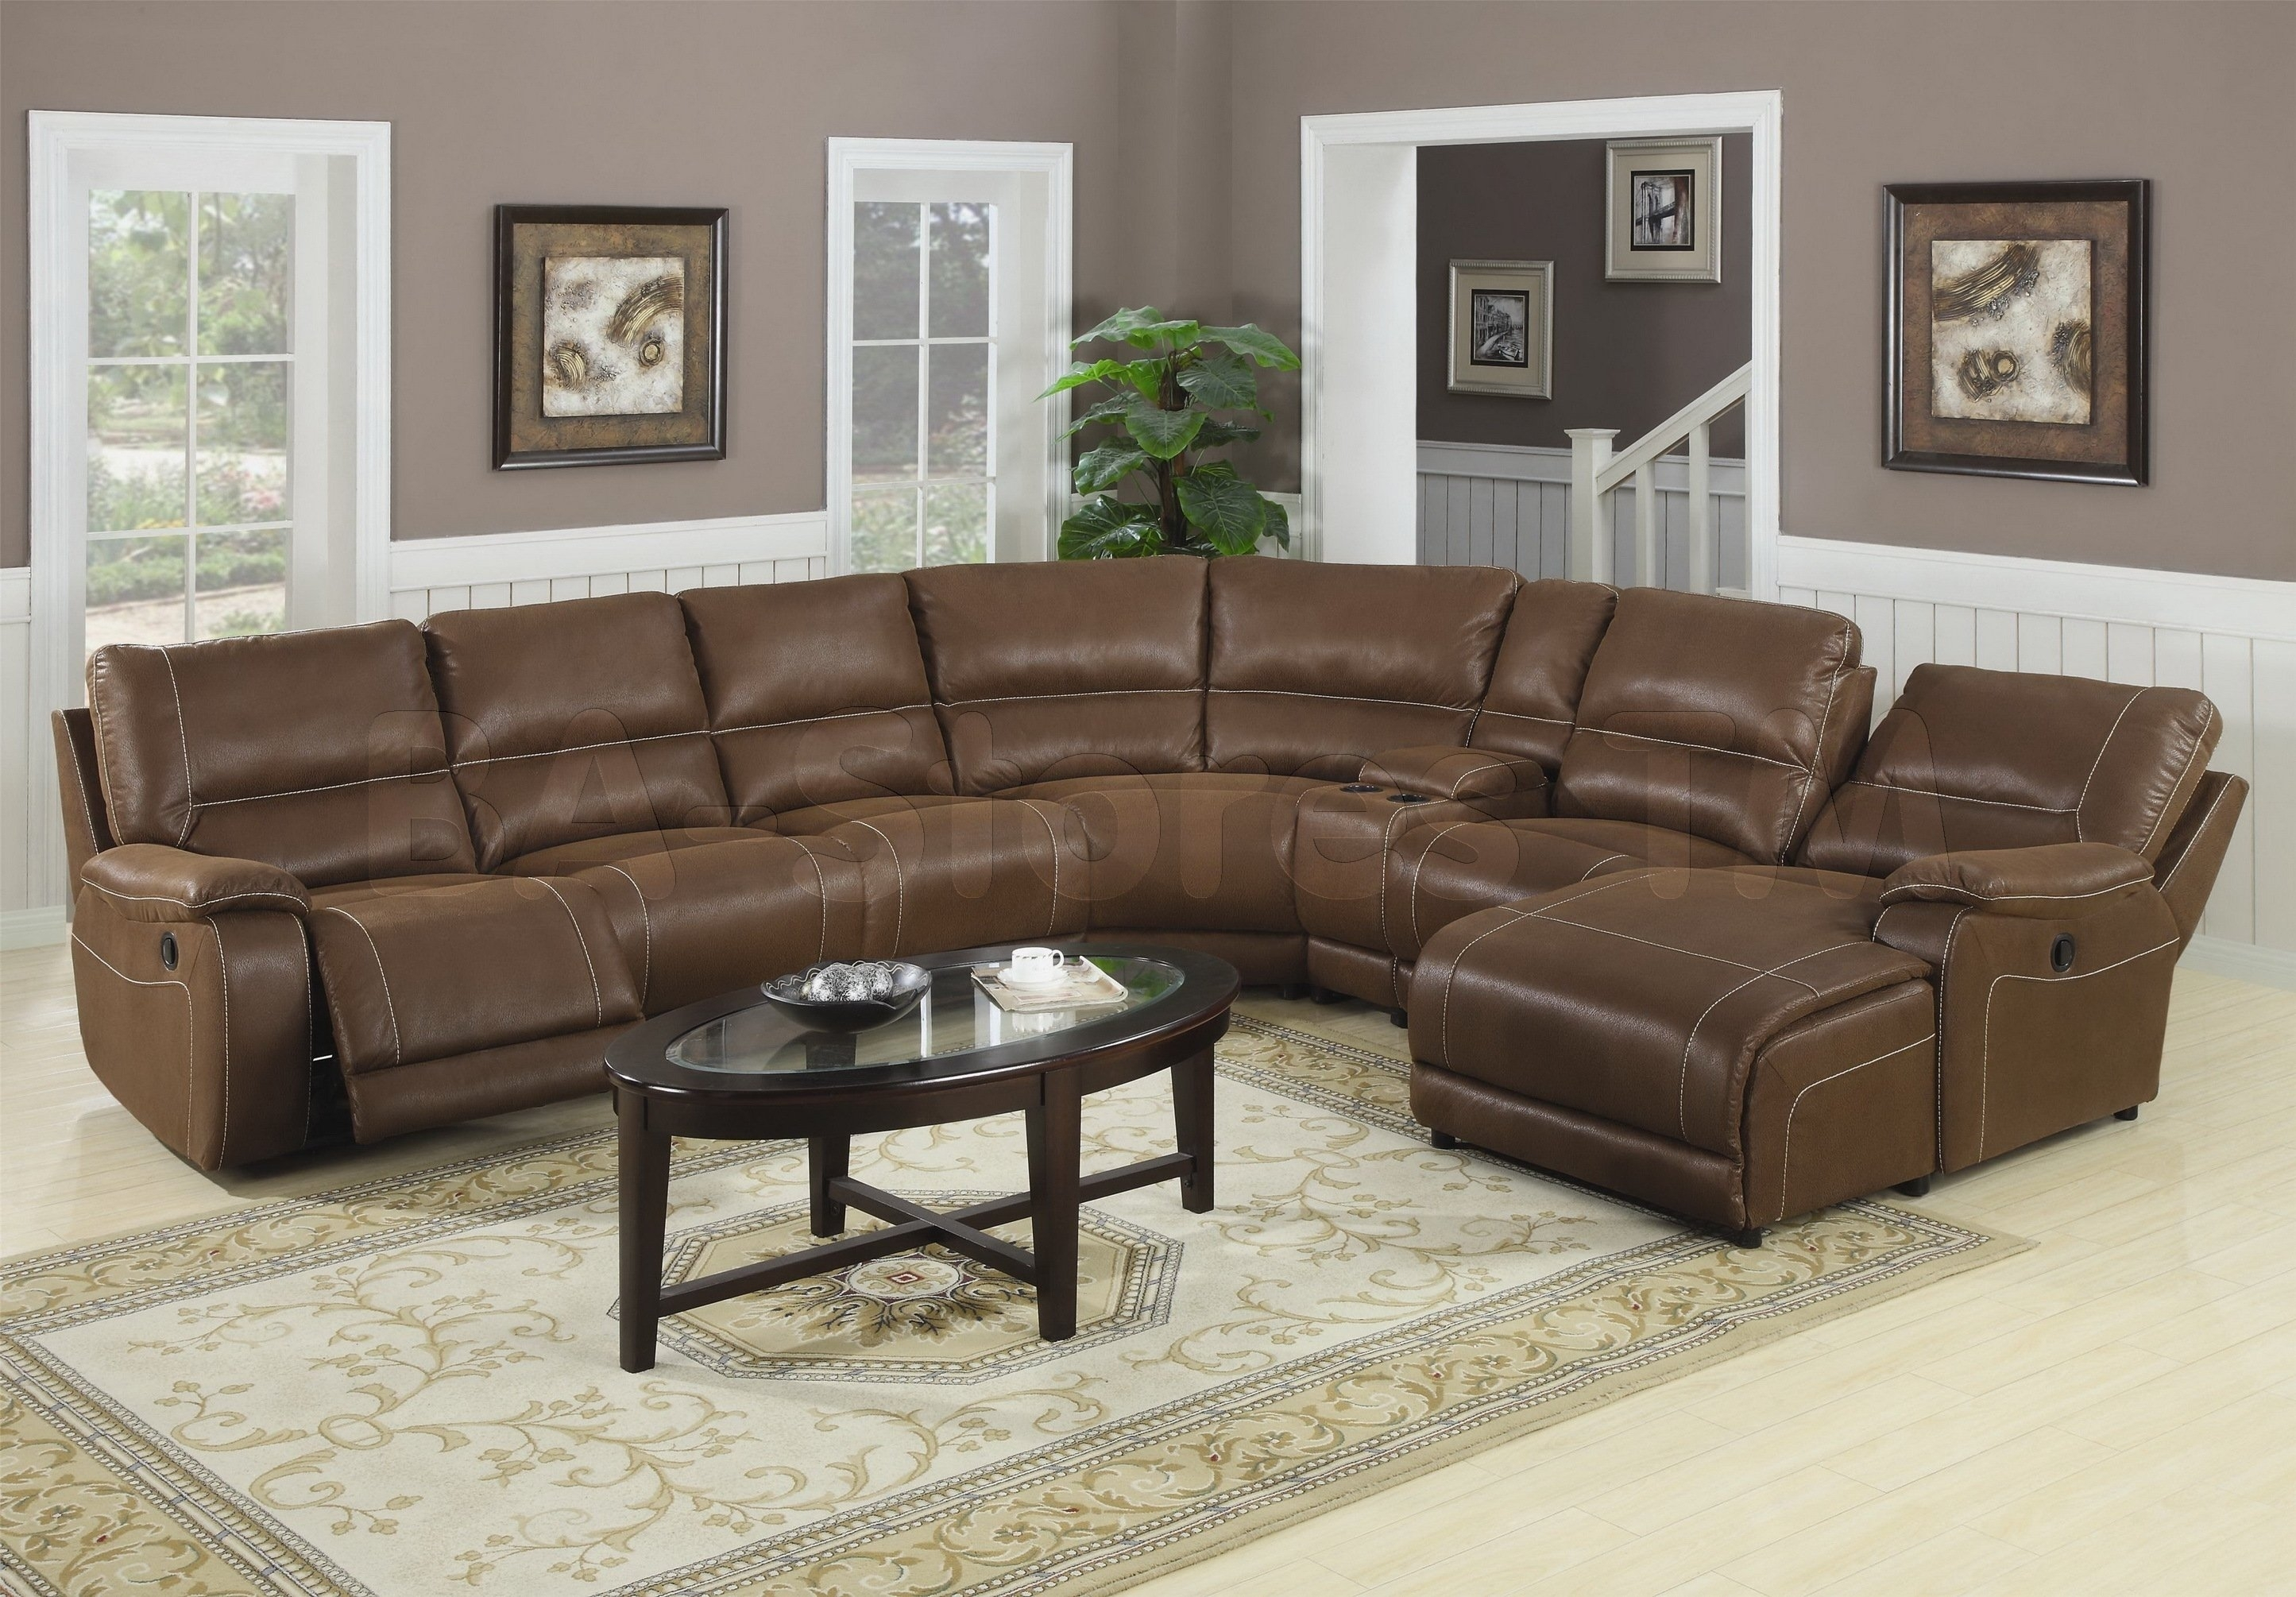 Interior Luxury Oversized Sectional Sofa For Awesome Living Room with Large Sectional Sofas (Image 7 of 10)